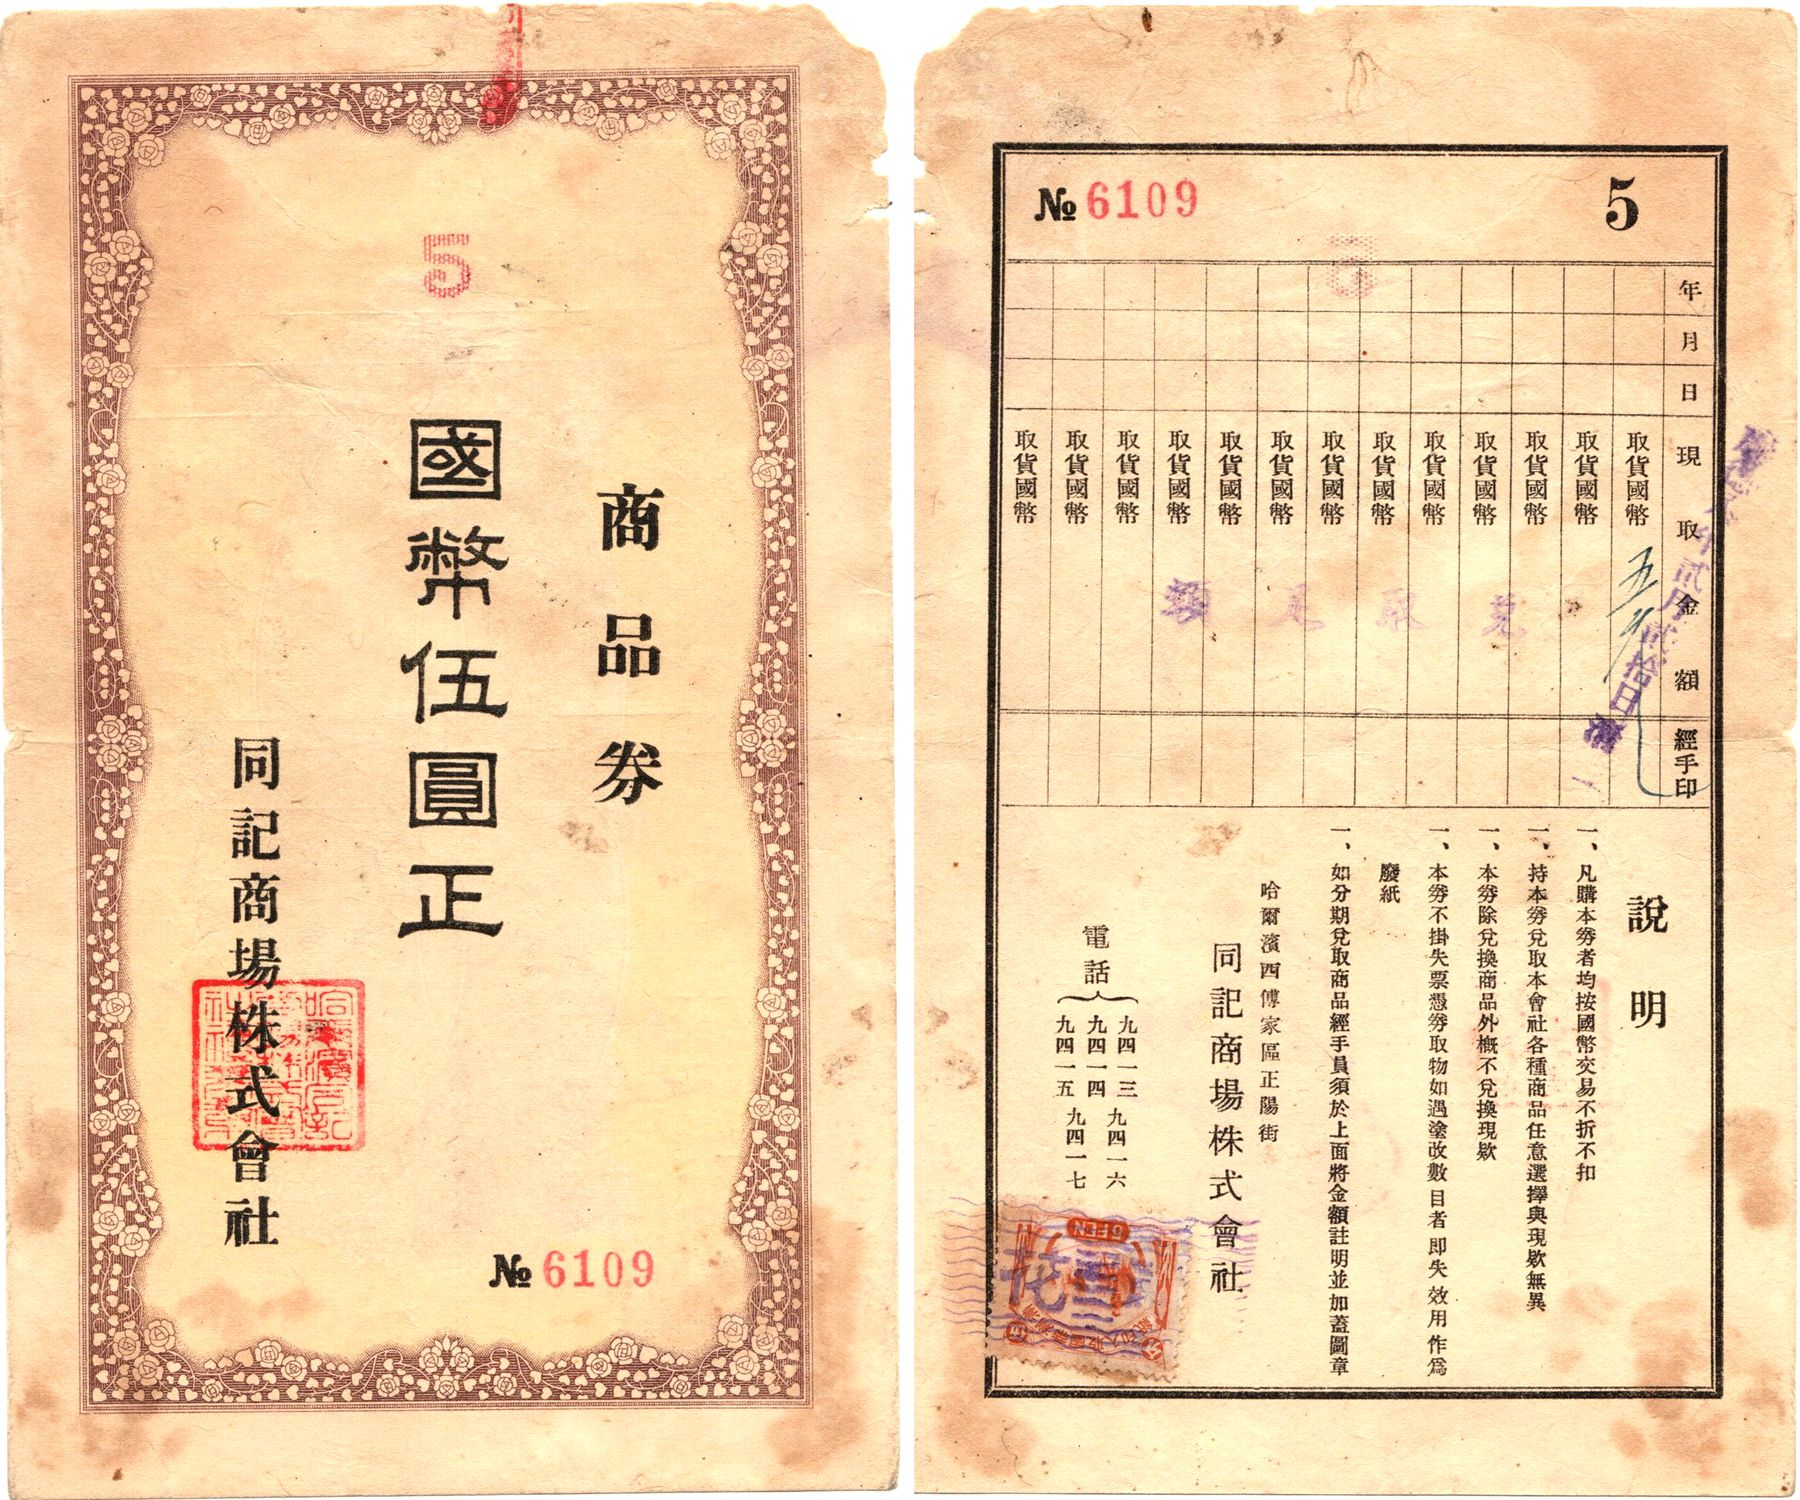 D6021, Manchuria Department Store Cash Coupons 5 Dollars, 1930's Watermark